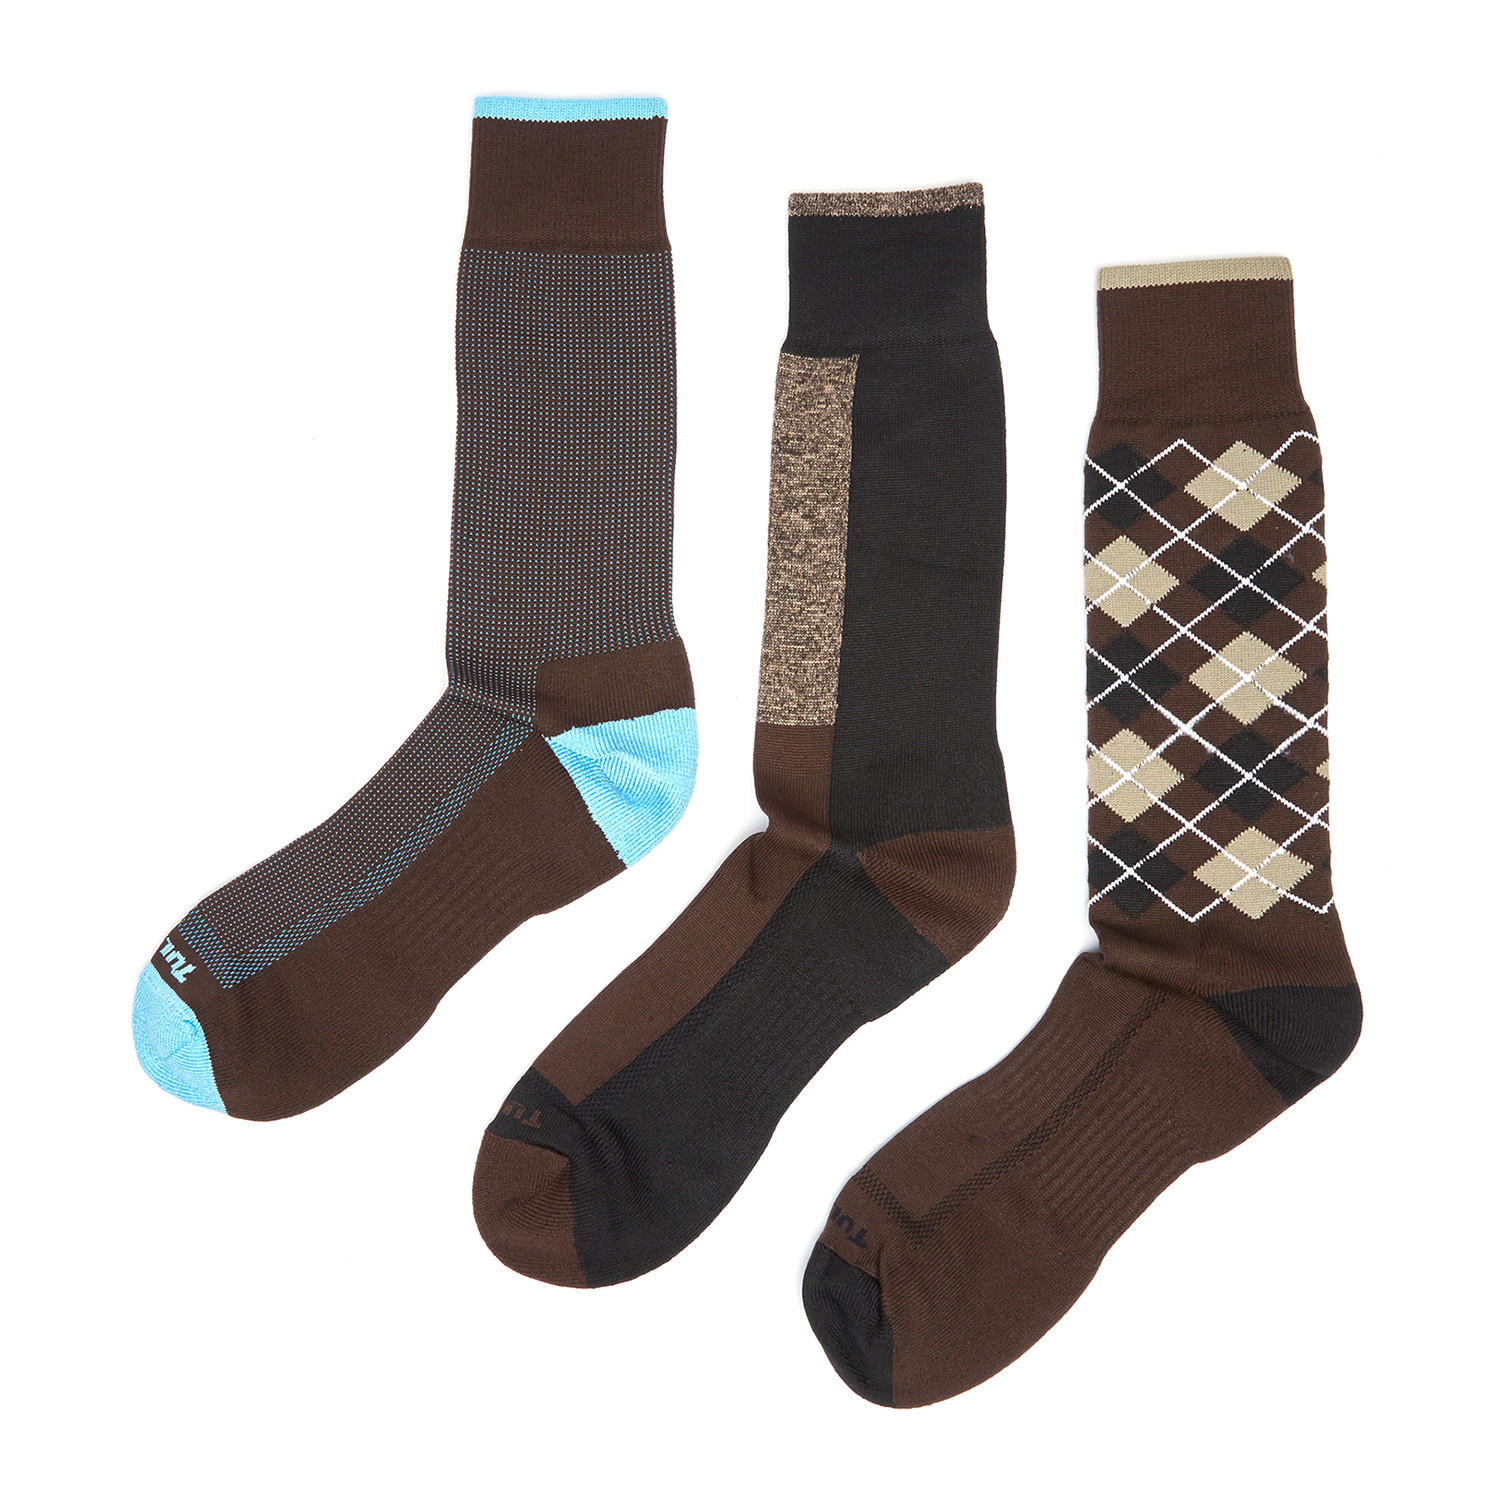 Dress socks brown pack of 3 remo tulliani touch of modern